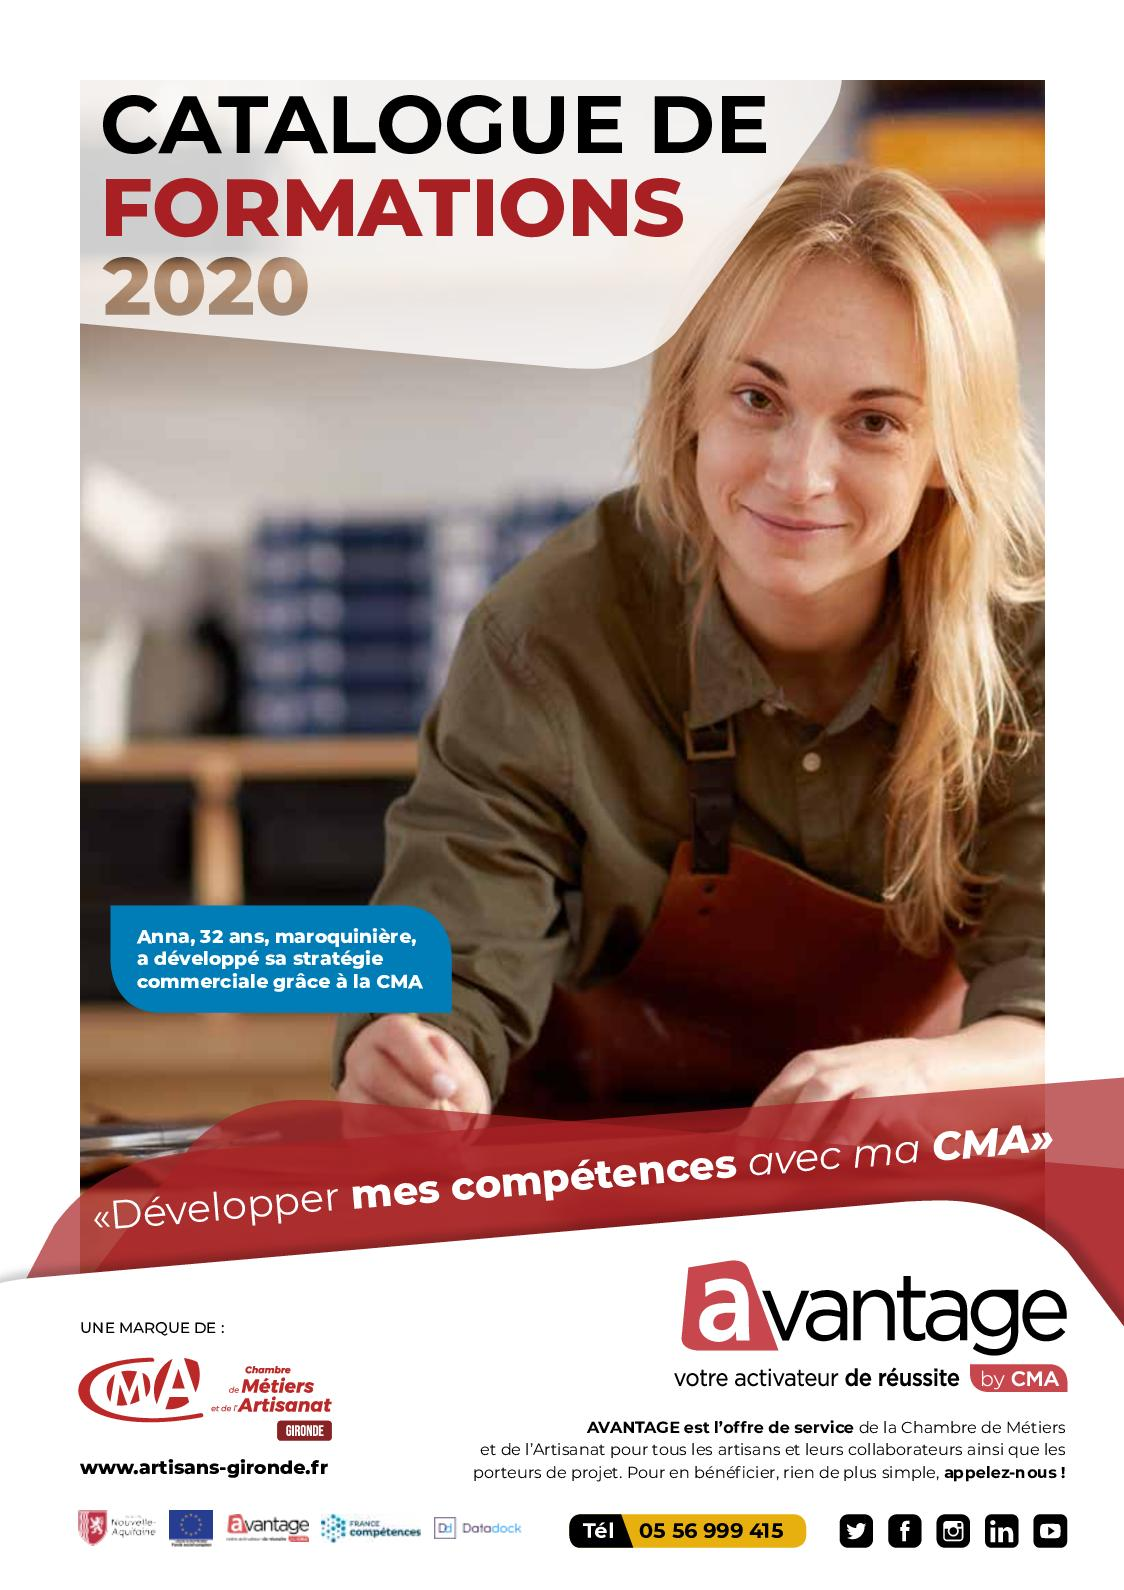 Calaméo - Catalogue de formations 2020